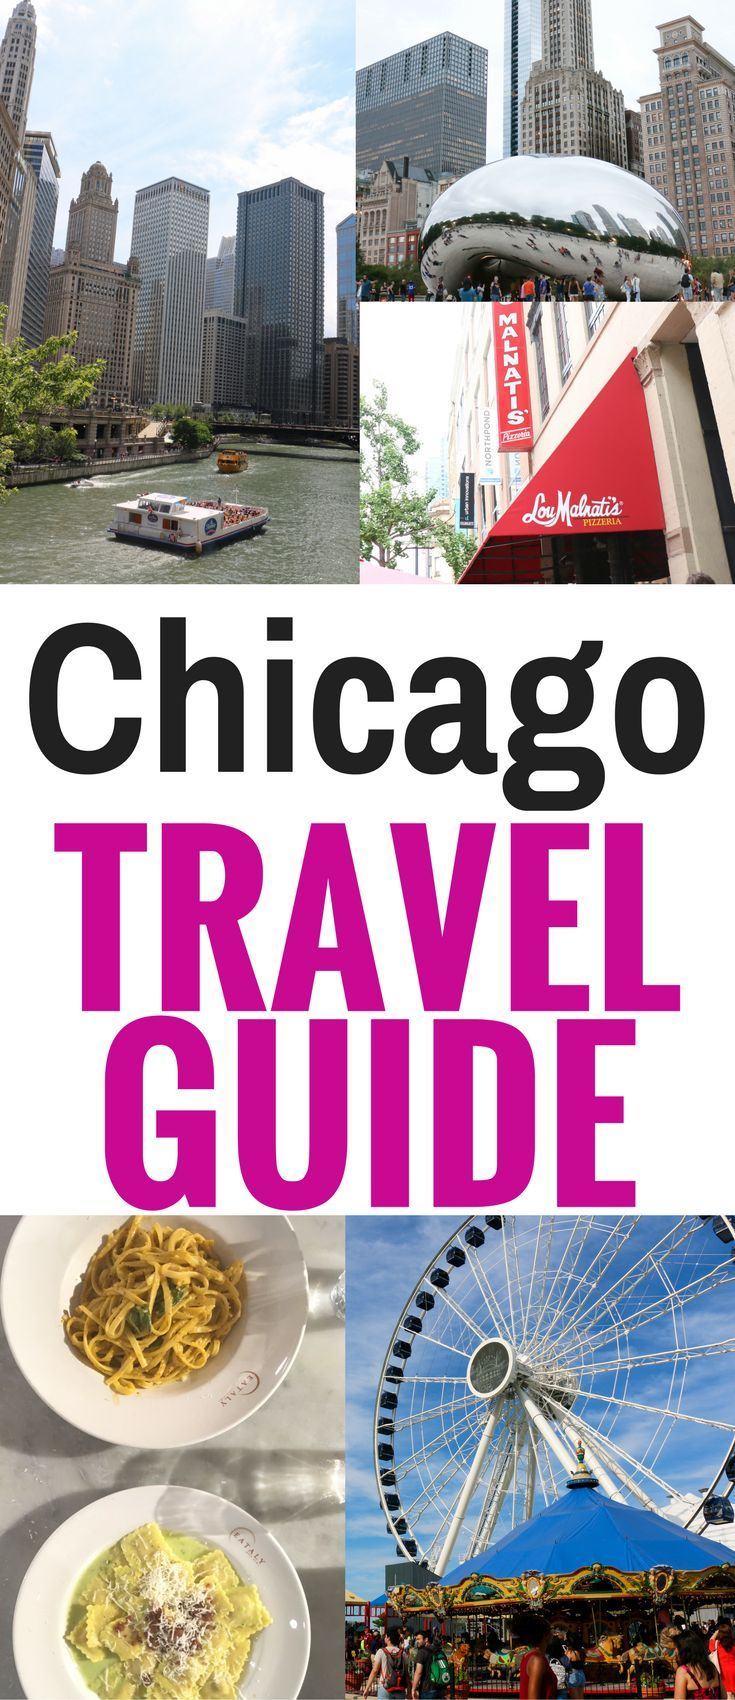 This Chicago Travel Guide gives you tips for fun things to do and see in Chicago for kids and adults. Plus, the best food and entertainment.